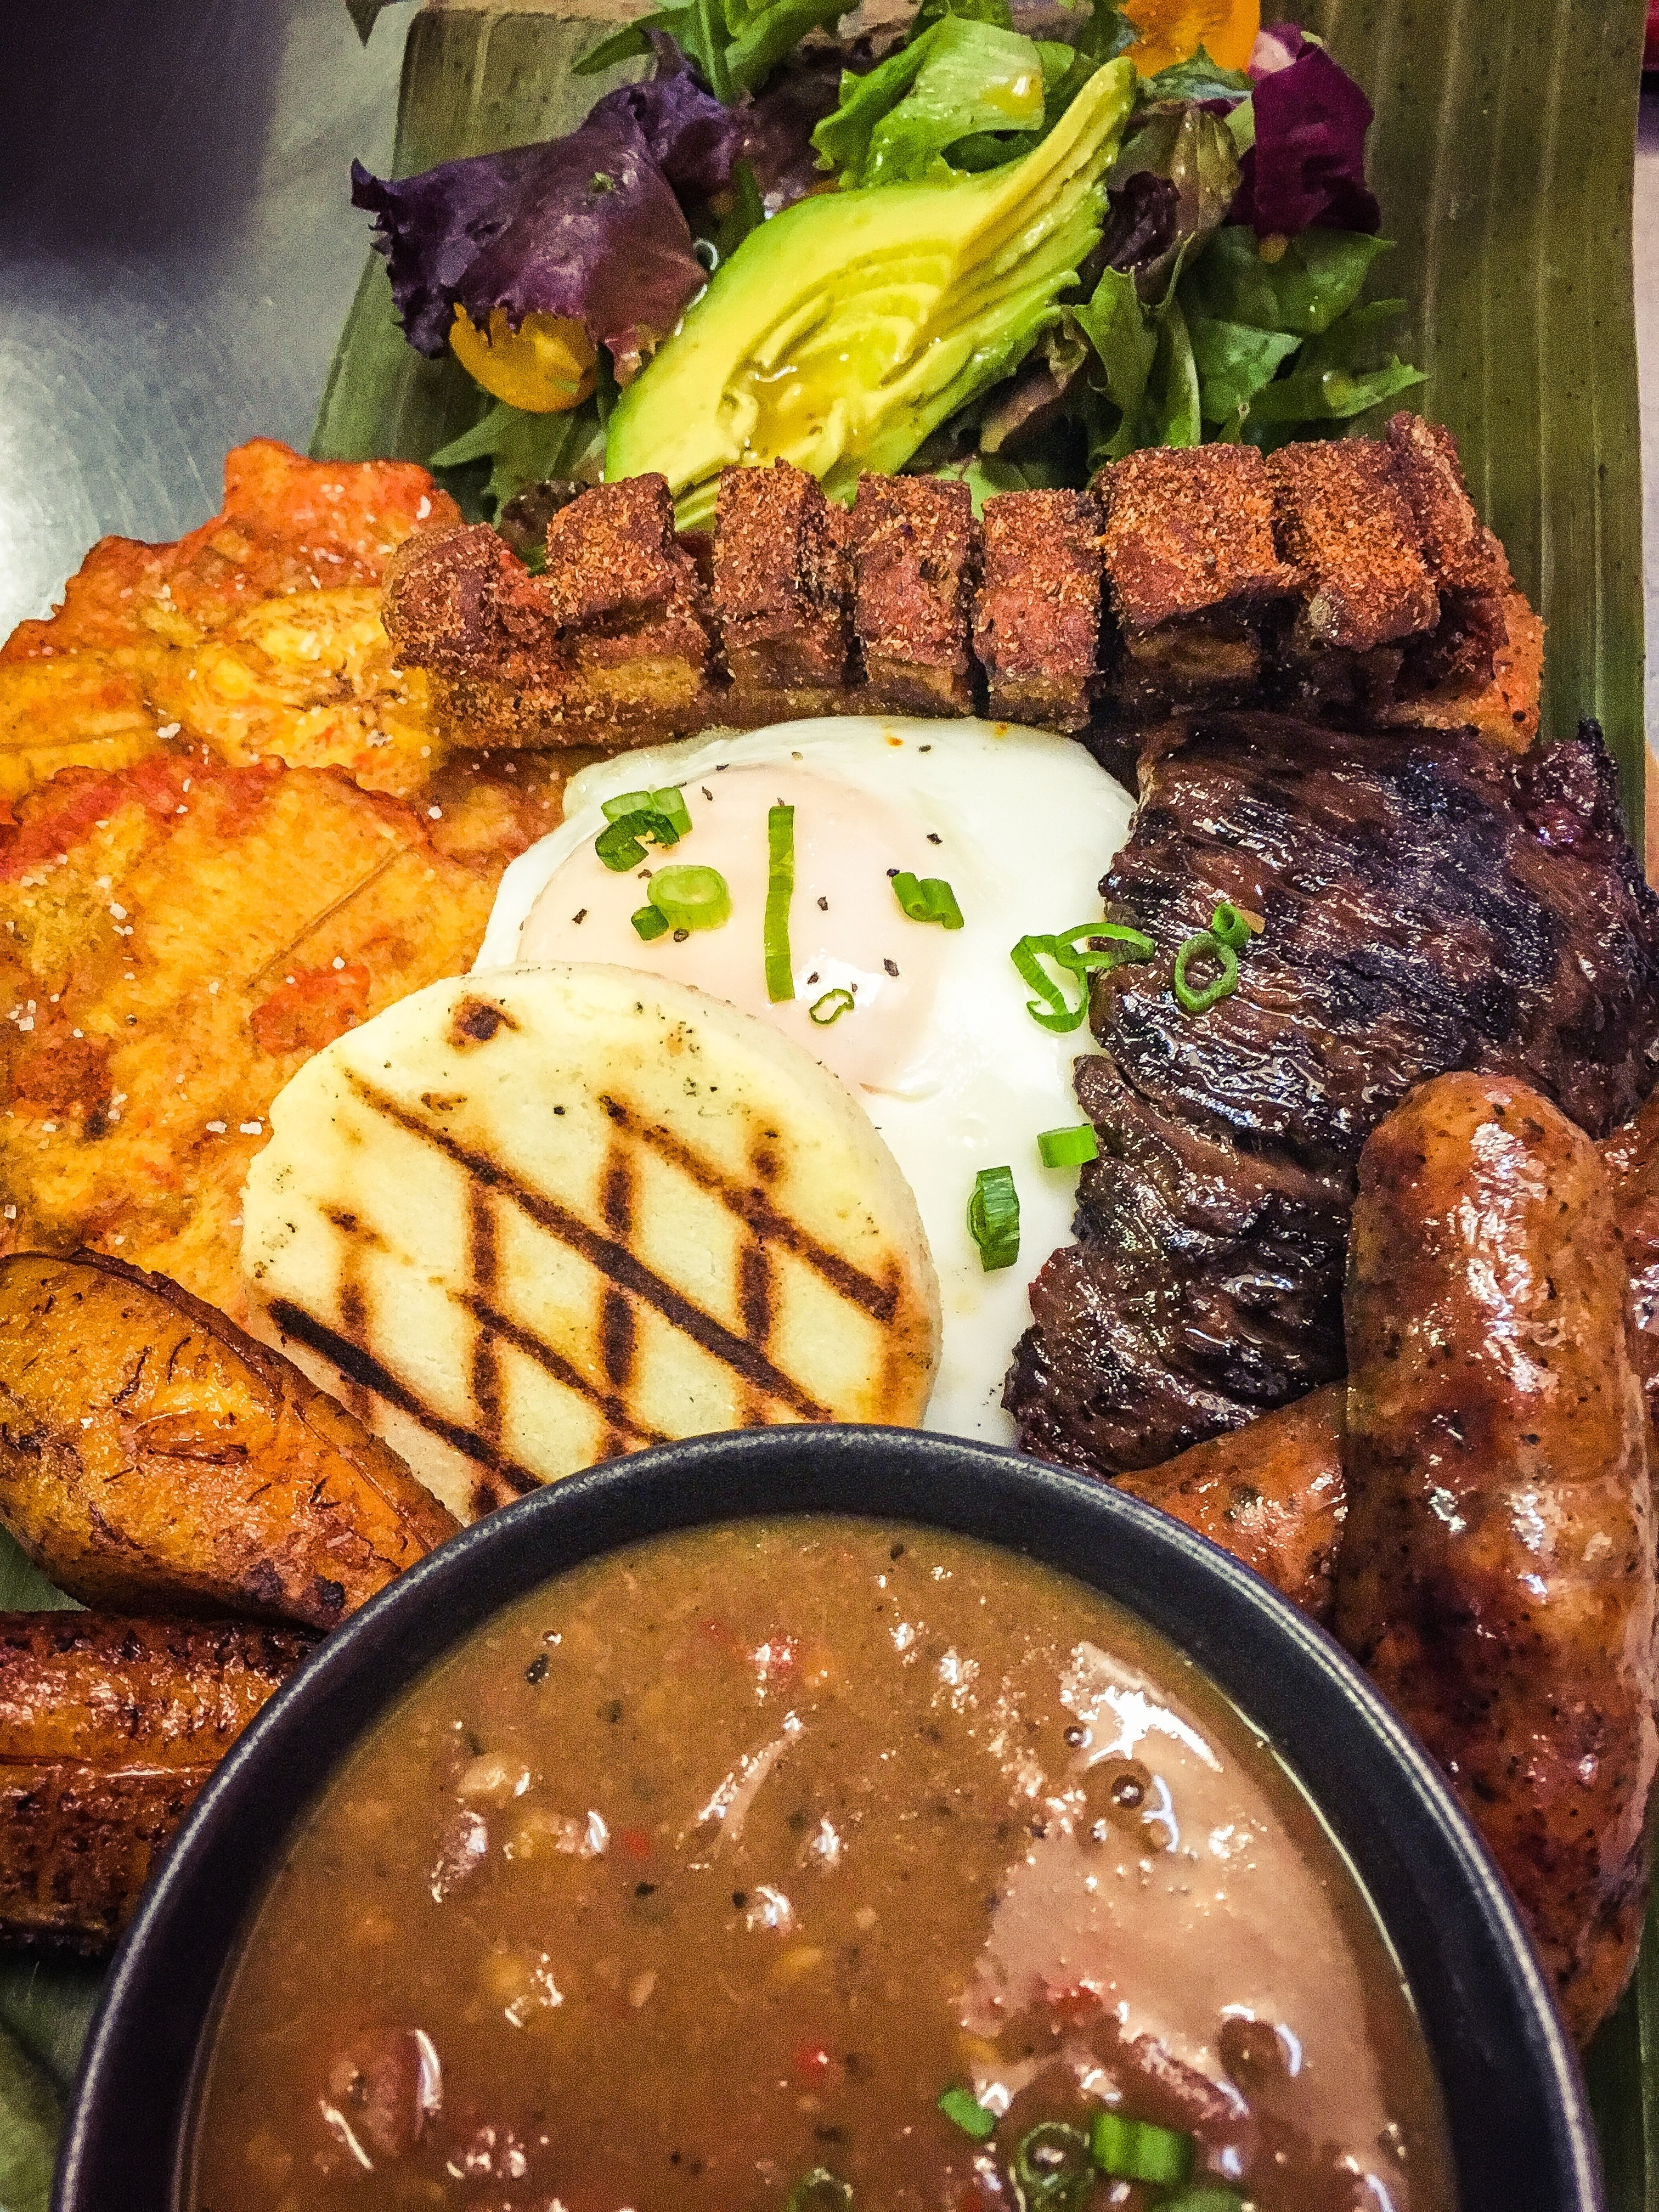 Where to find authentic latin cuisine in new orleans for Authentic new orleans cuisine